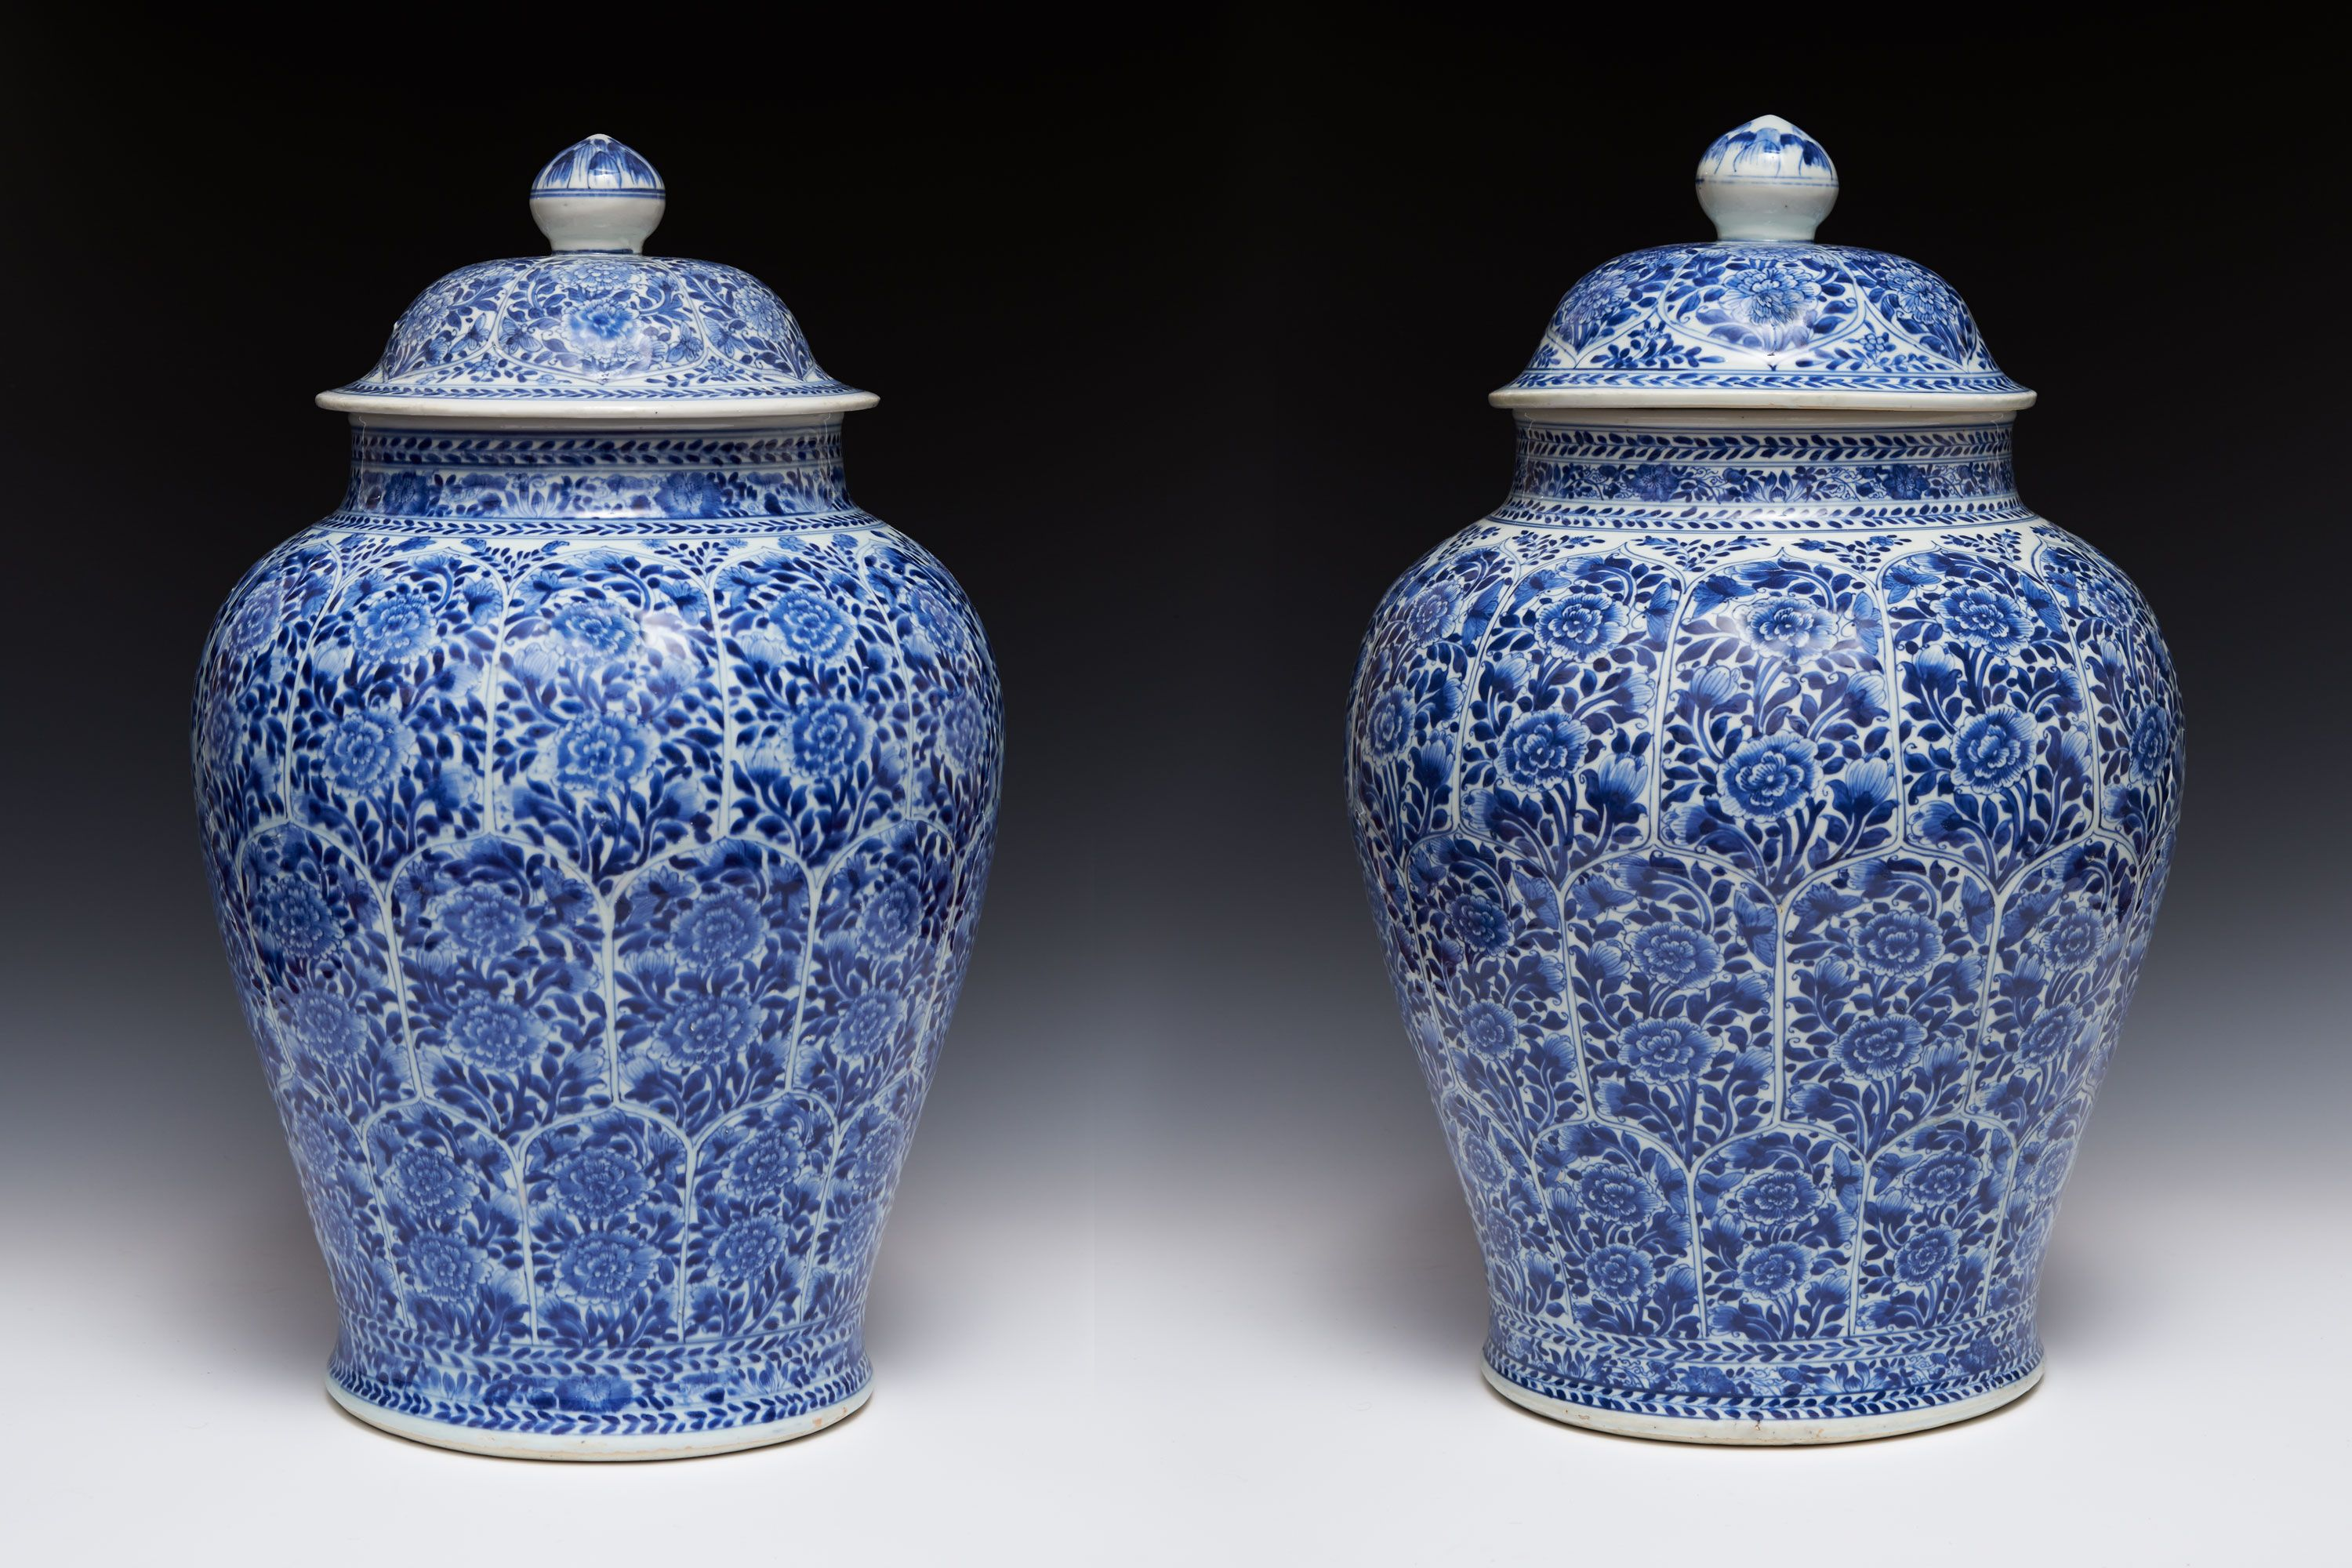 Pair of Chinese export porcelain baluster jars decorated in under-glaze cobalt blue, Kangxi Reign, Qing Dynasty